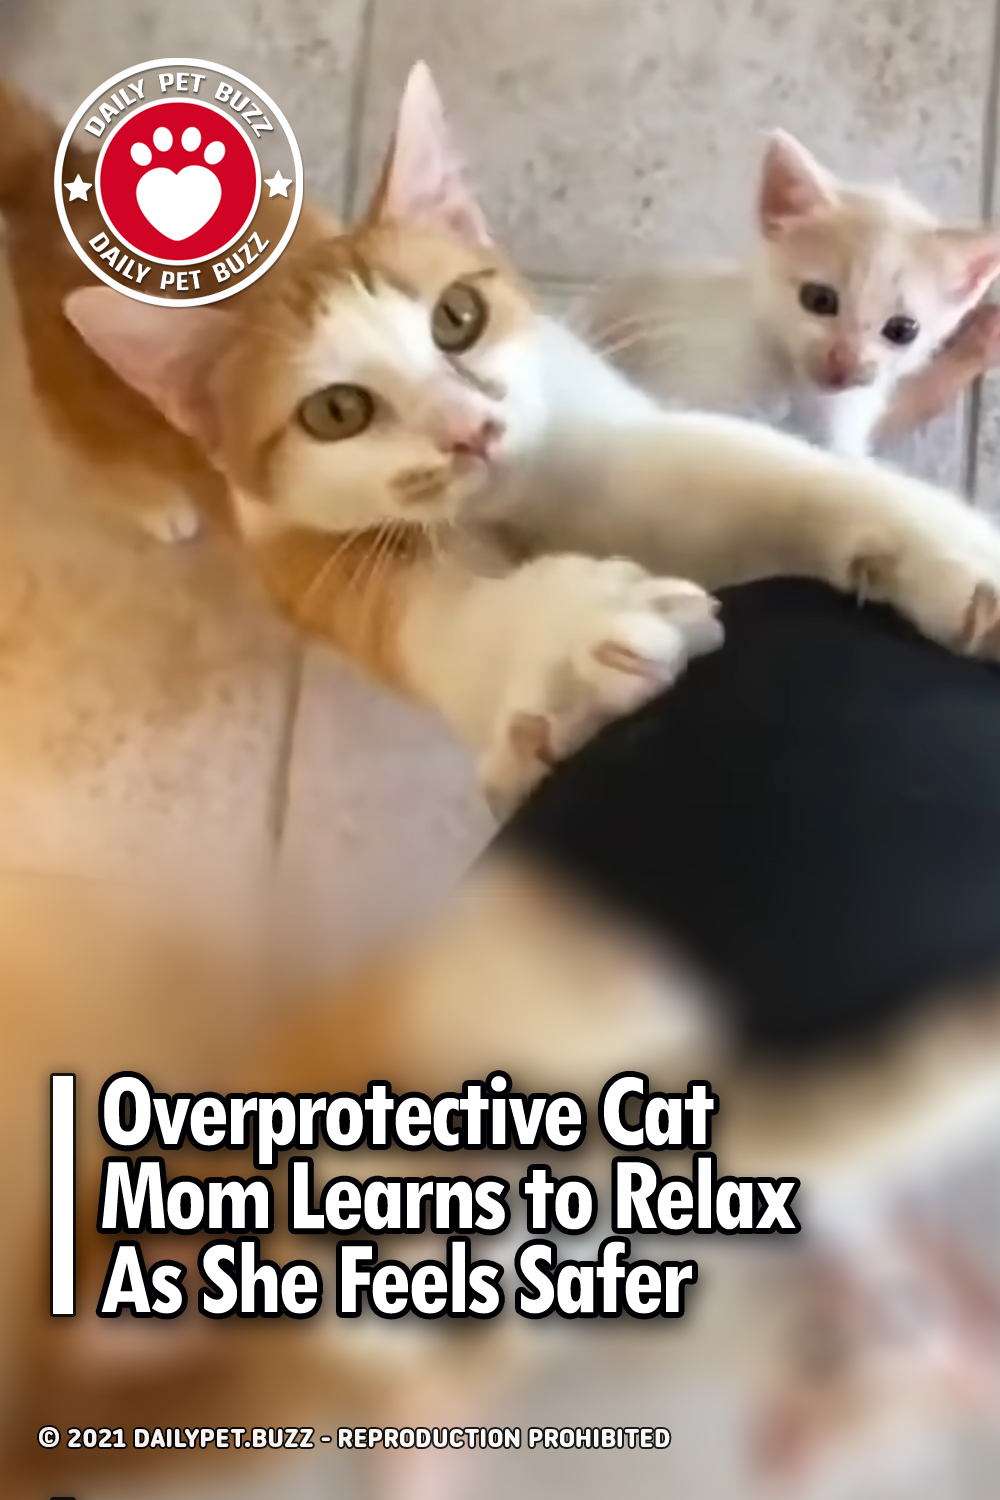 Overprotective Cat Mom Learns to Relax As She Feels Safer